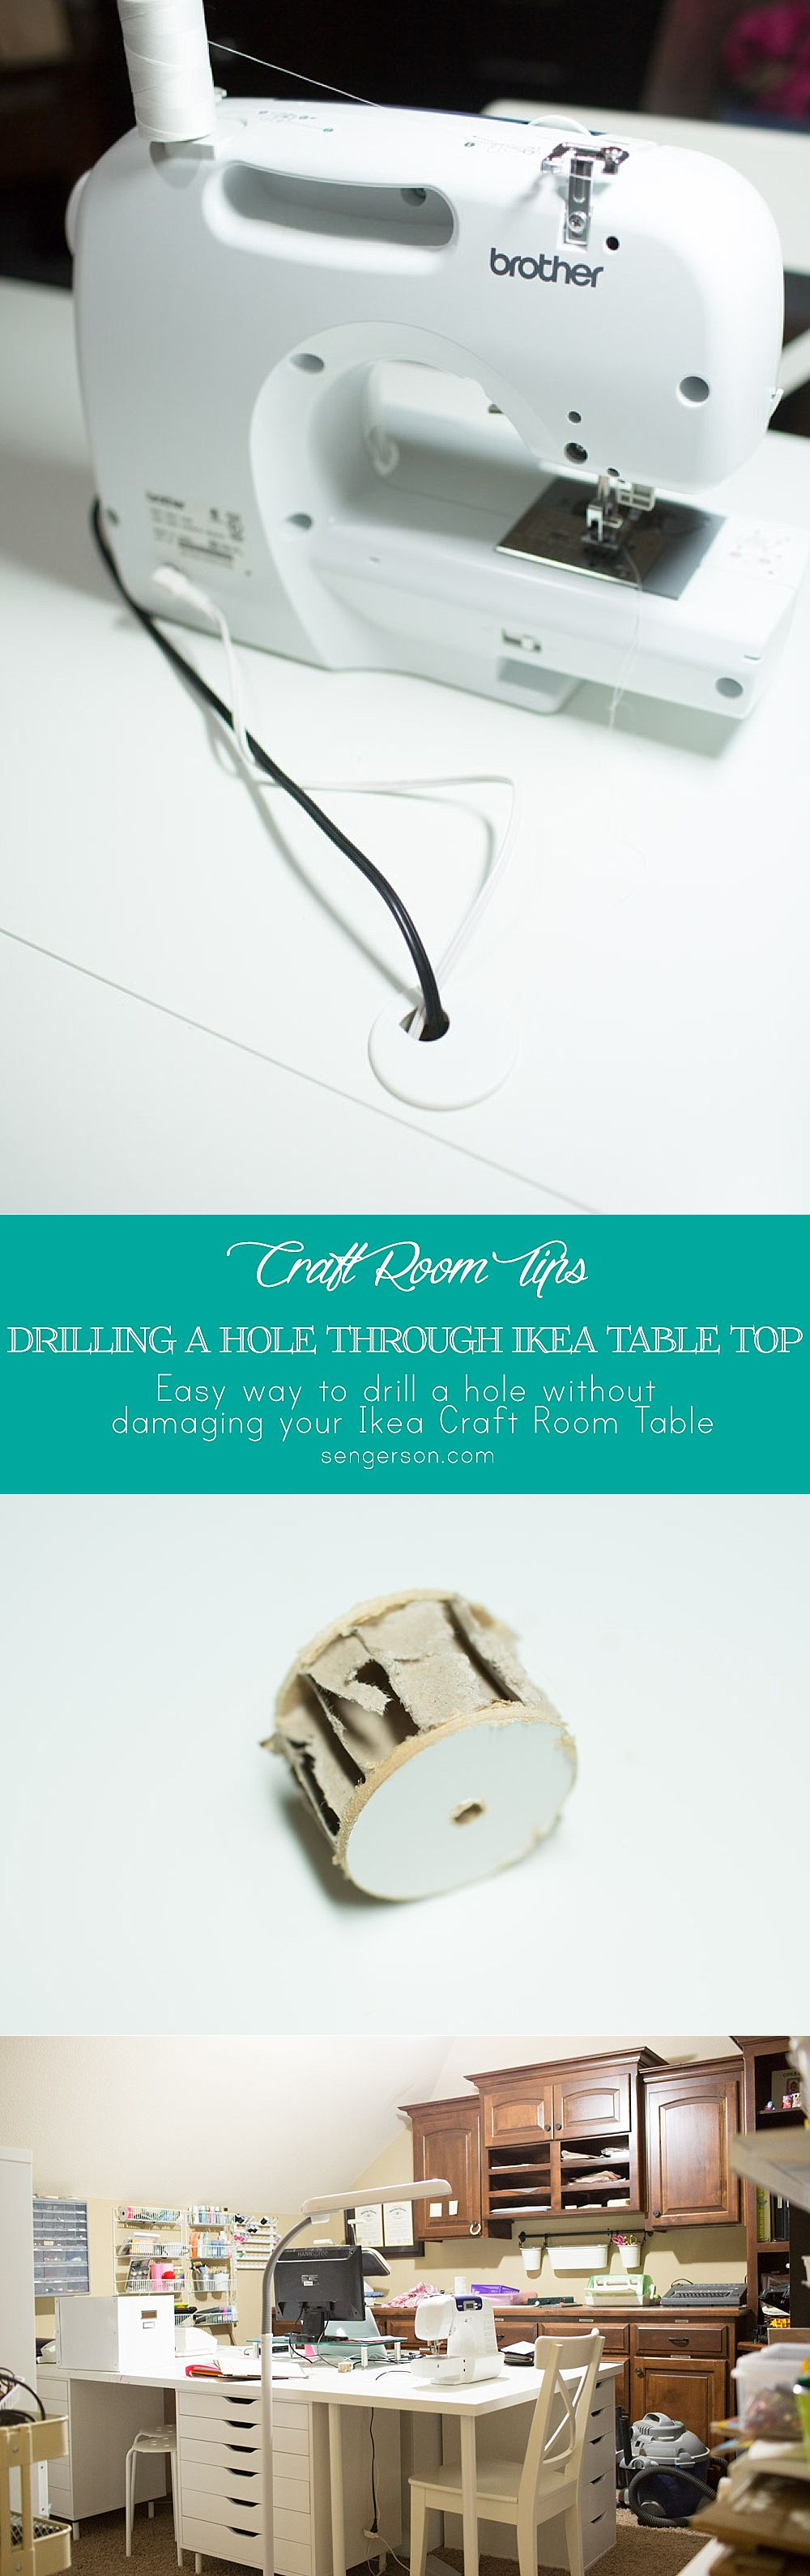 Craft room table top with Ikea Linnmon table - how to cut through linnmon table top without damaging it. Create a hole for the electrical wires.